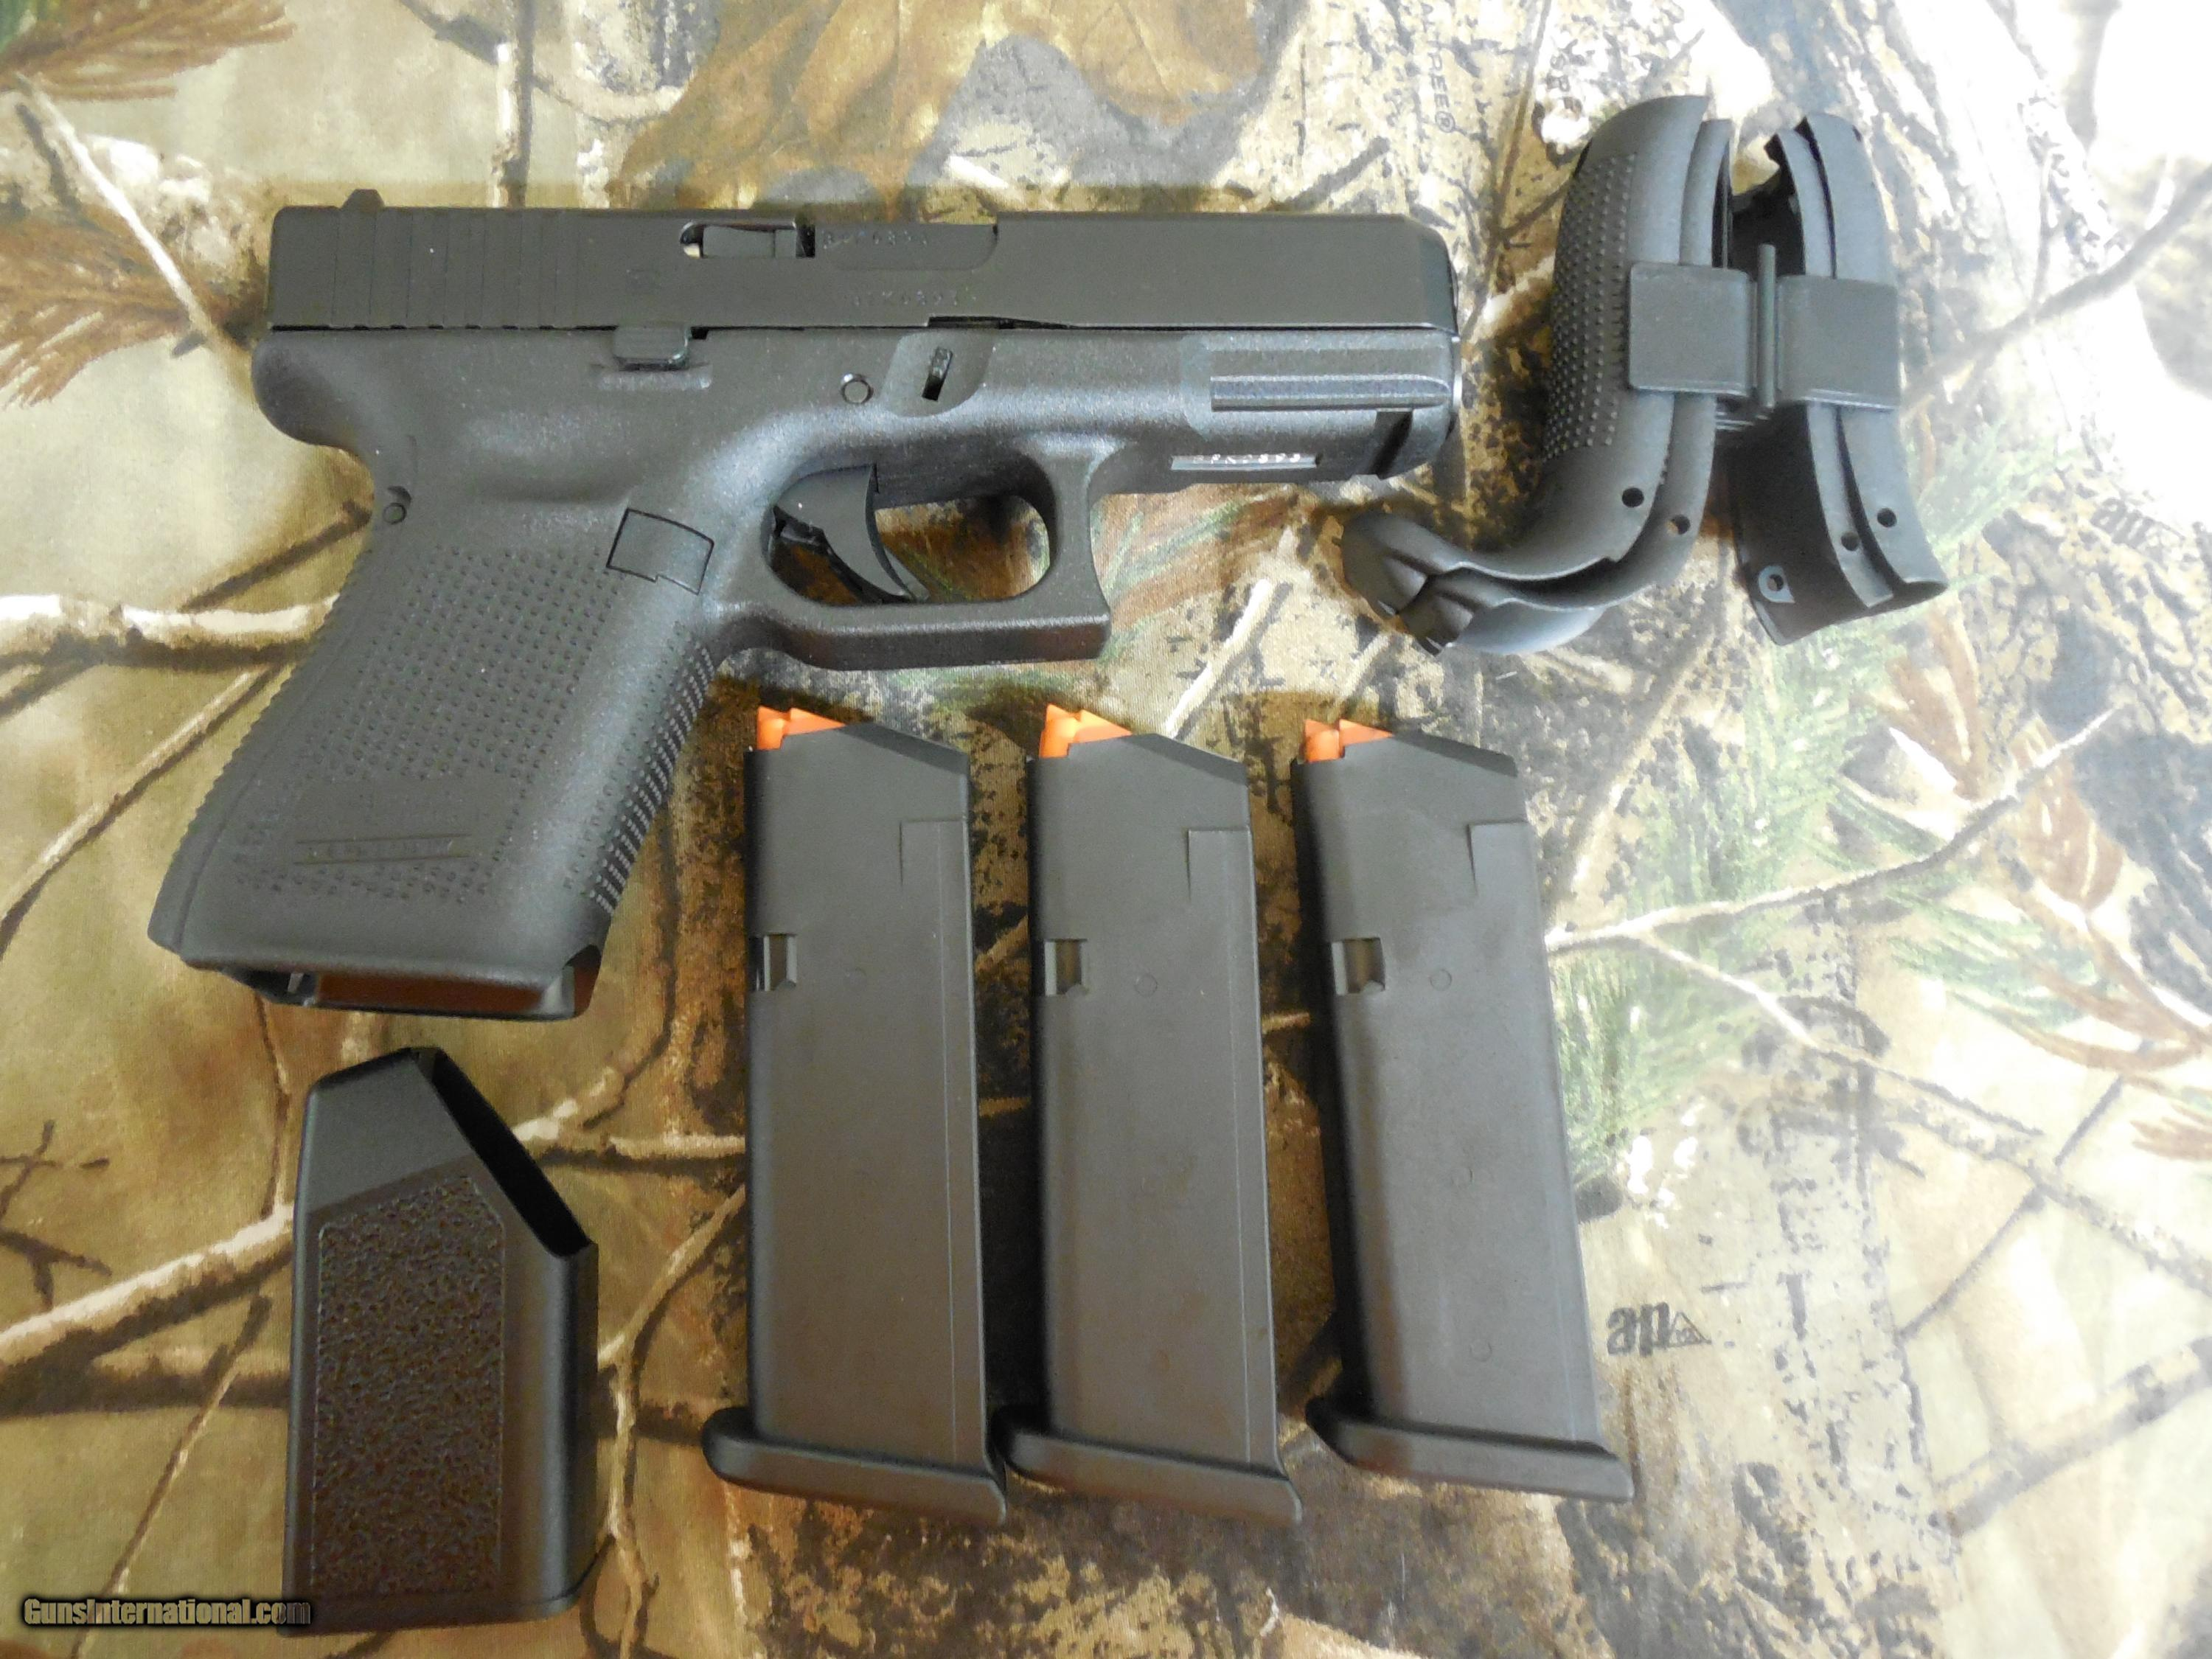 GLOCK GEN - 5, G-19, THE NEW GENERATION JUST OUT  9-MM, 3 - 15 ROUND